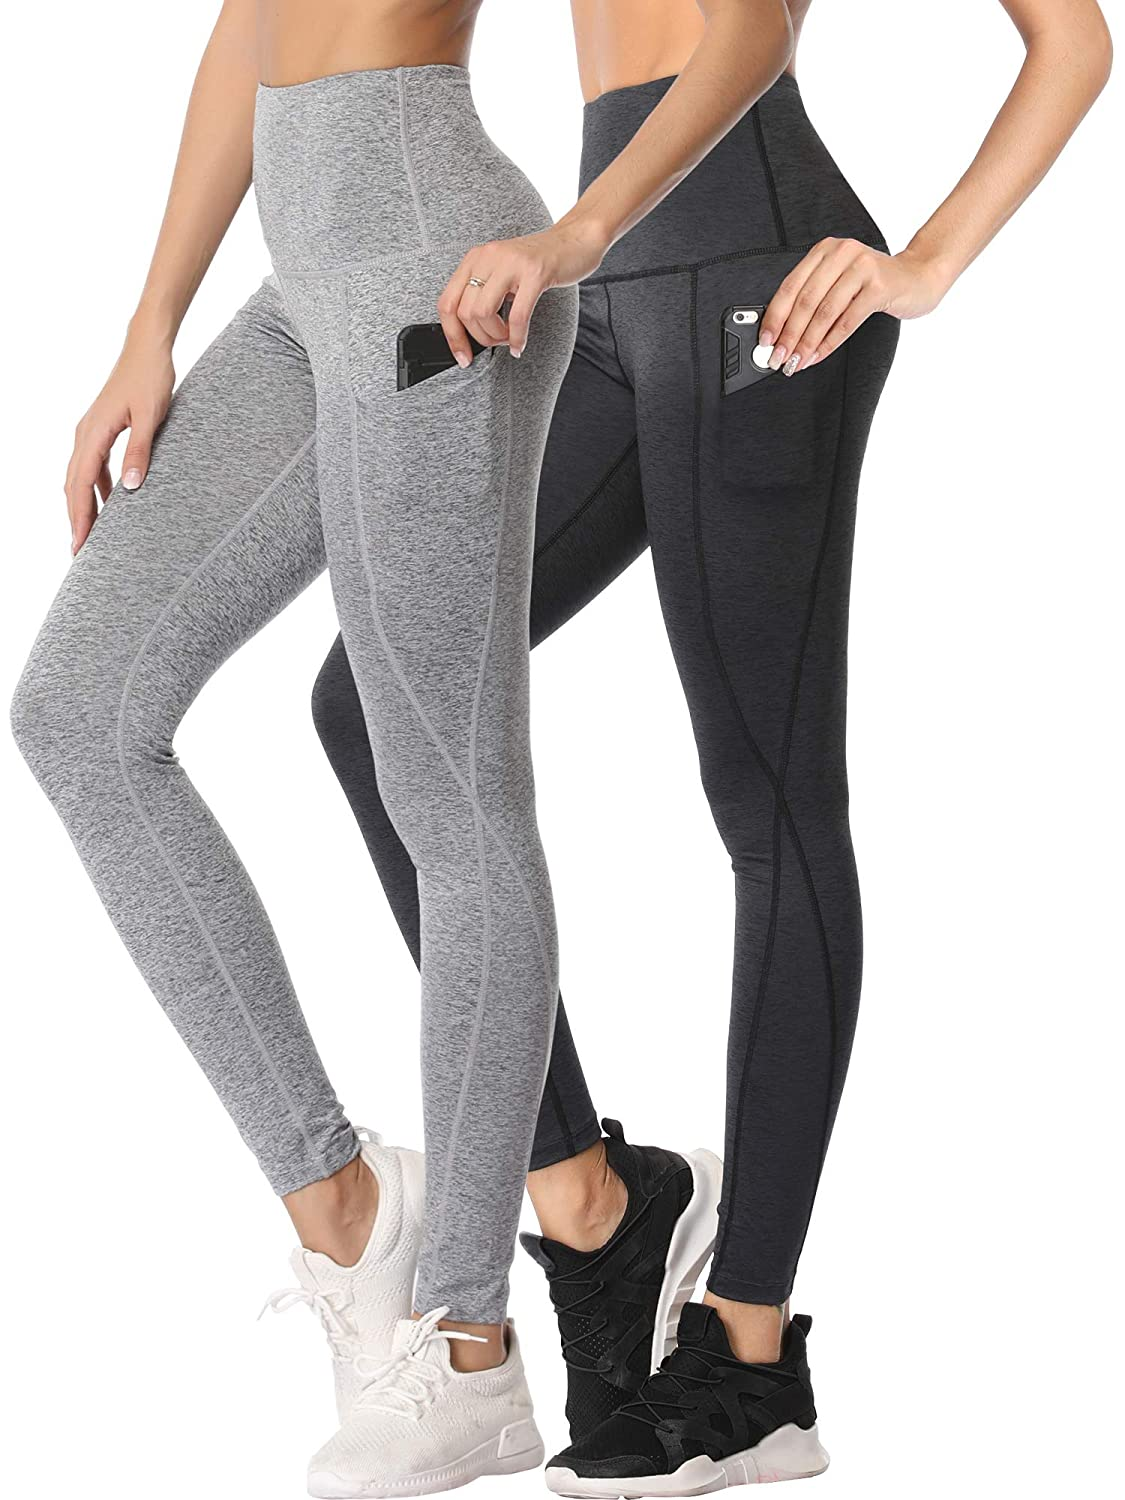 ★大人気商品★ Cadmus PANTS レディース B07JHHJ9PN Yoga Pants:02 Cadmus # Dark Pale Grey Gray,2 and Pale Gray,2 Pairs X-Large(Fit Waist:36